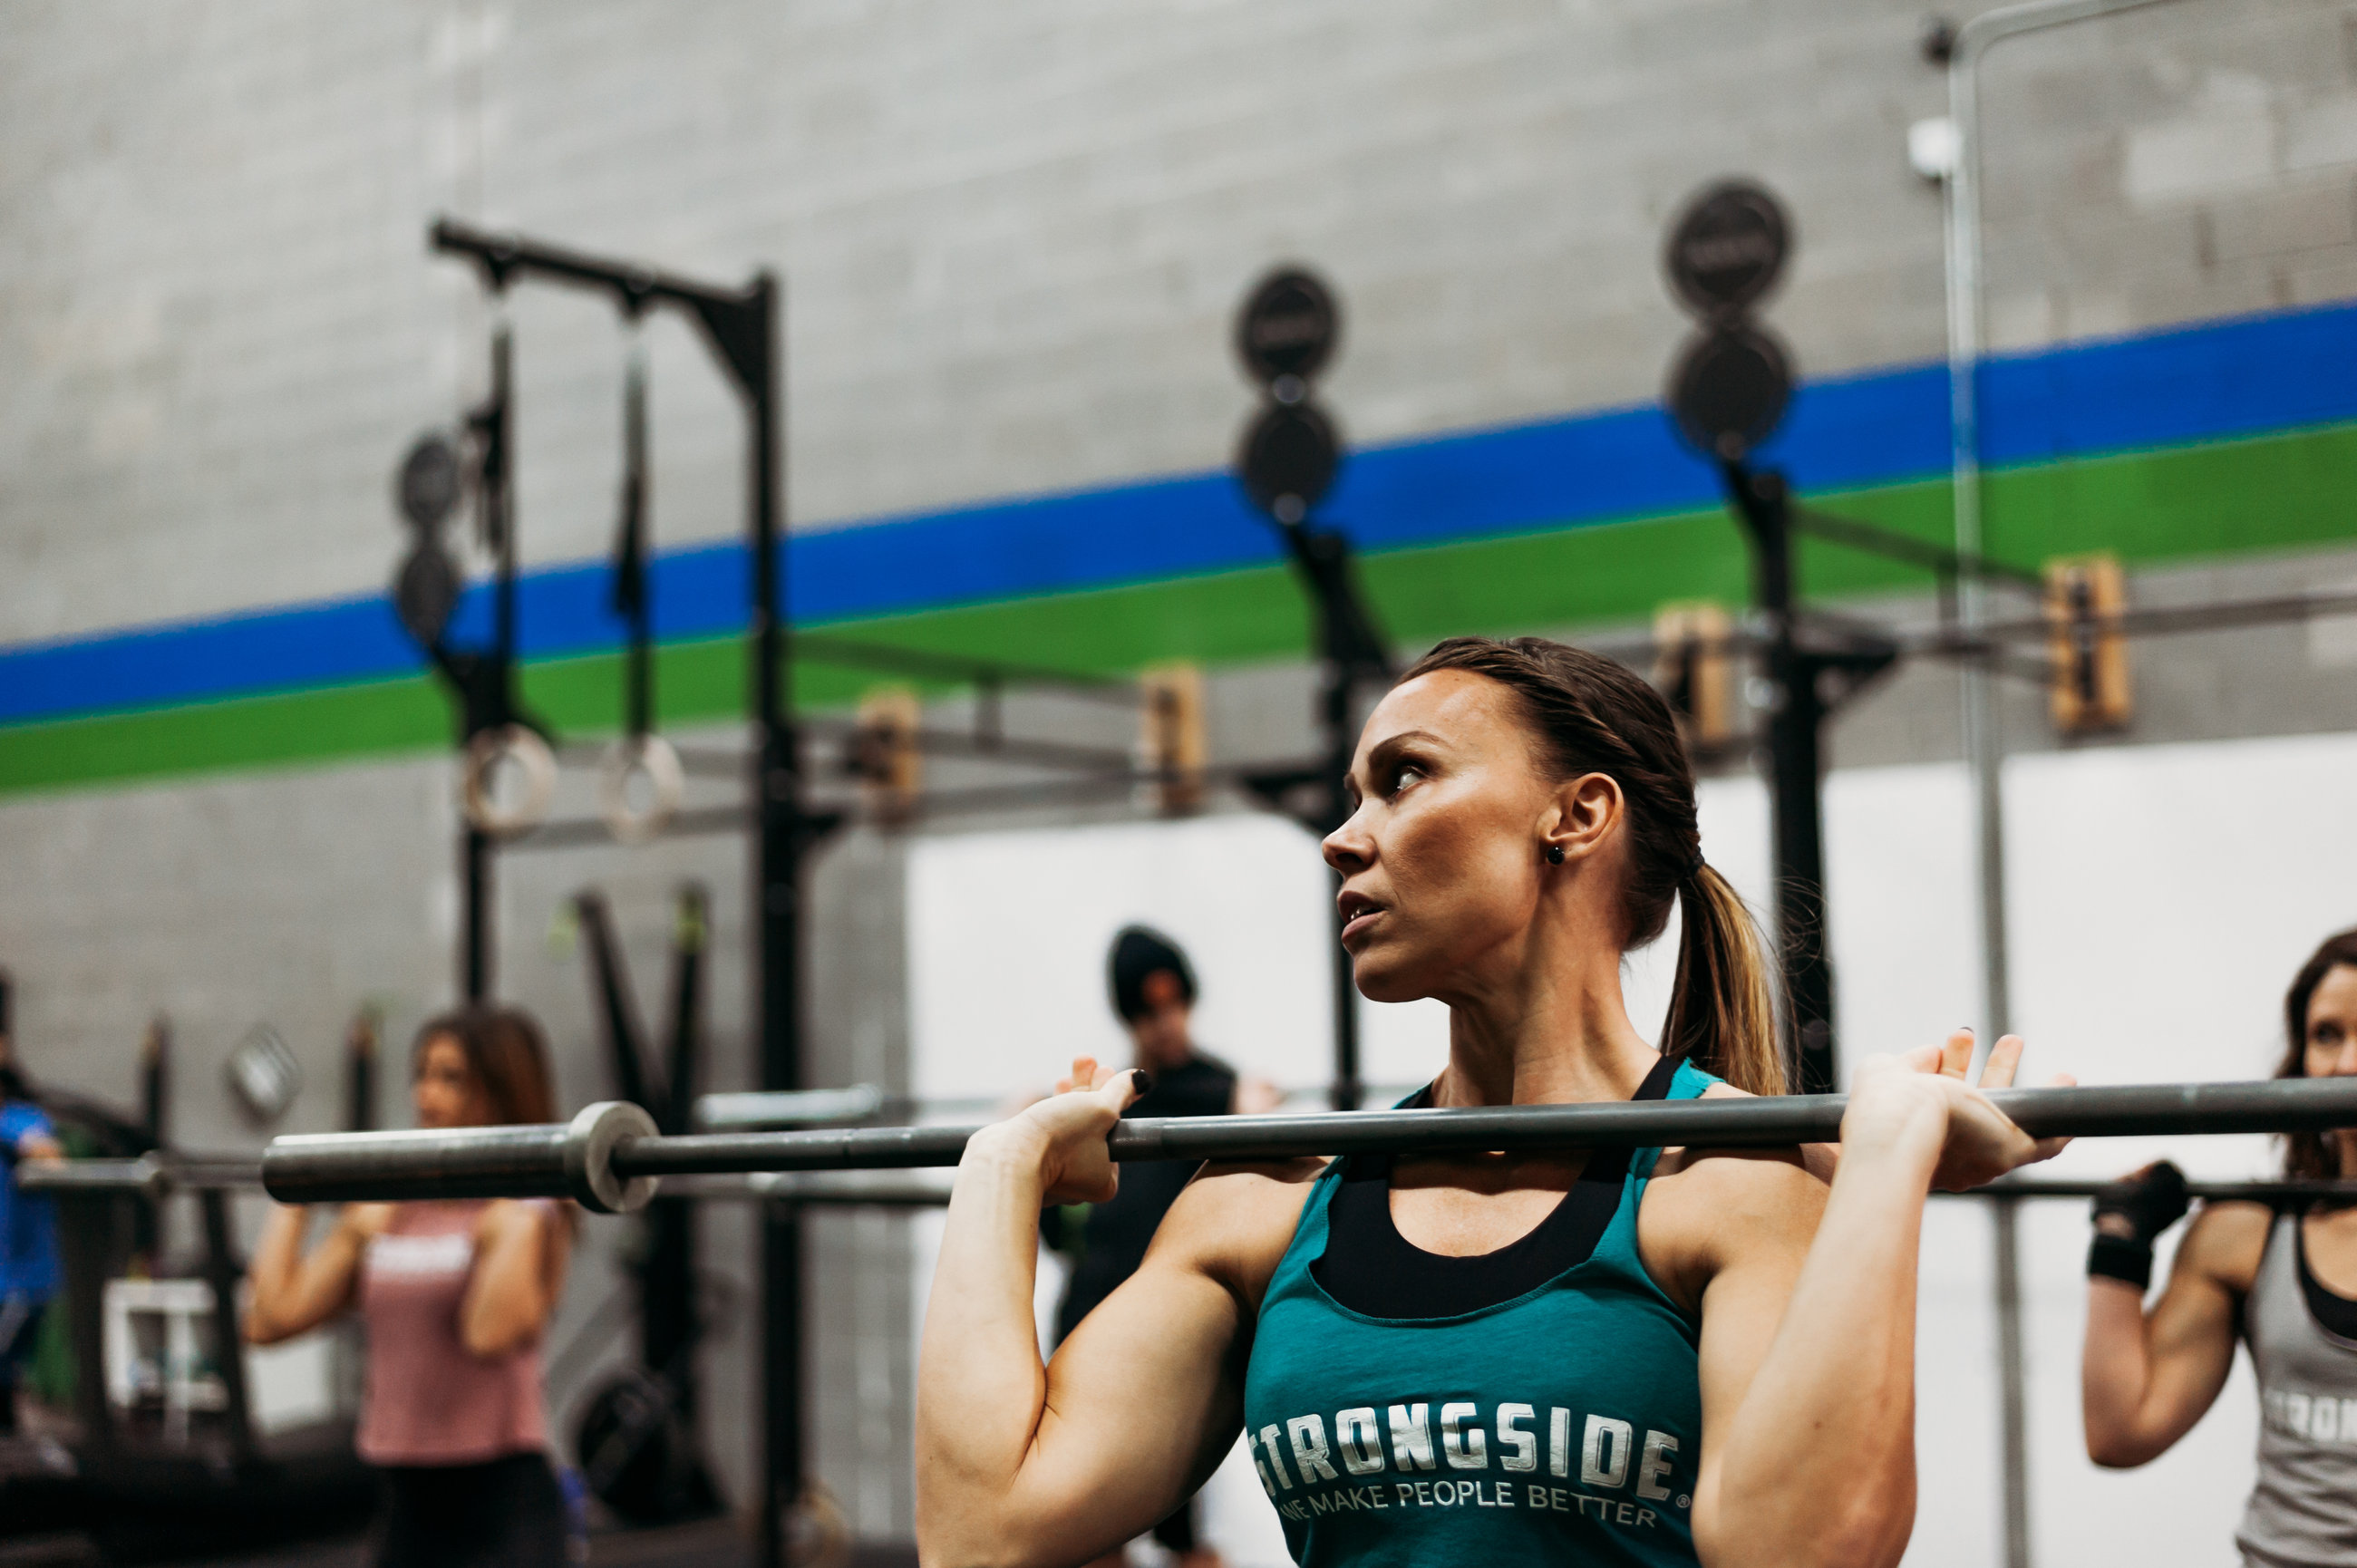 STRONGSIDE BARBELL: 5.11.20 – 5.17.20